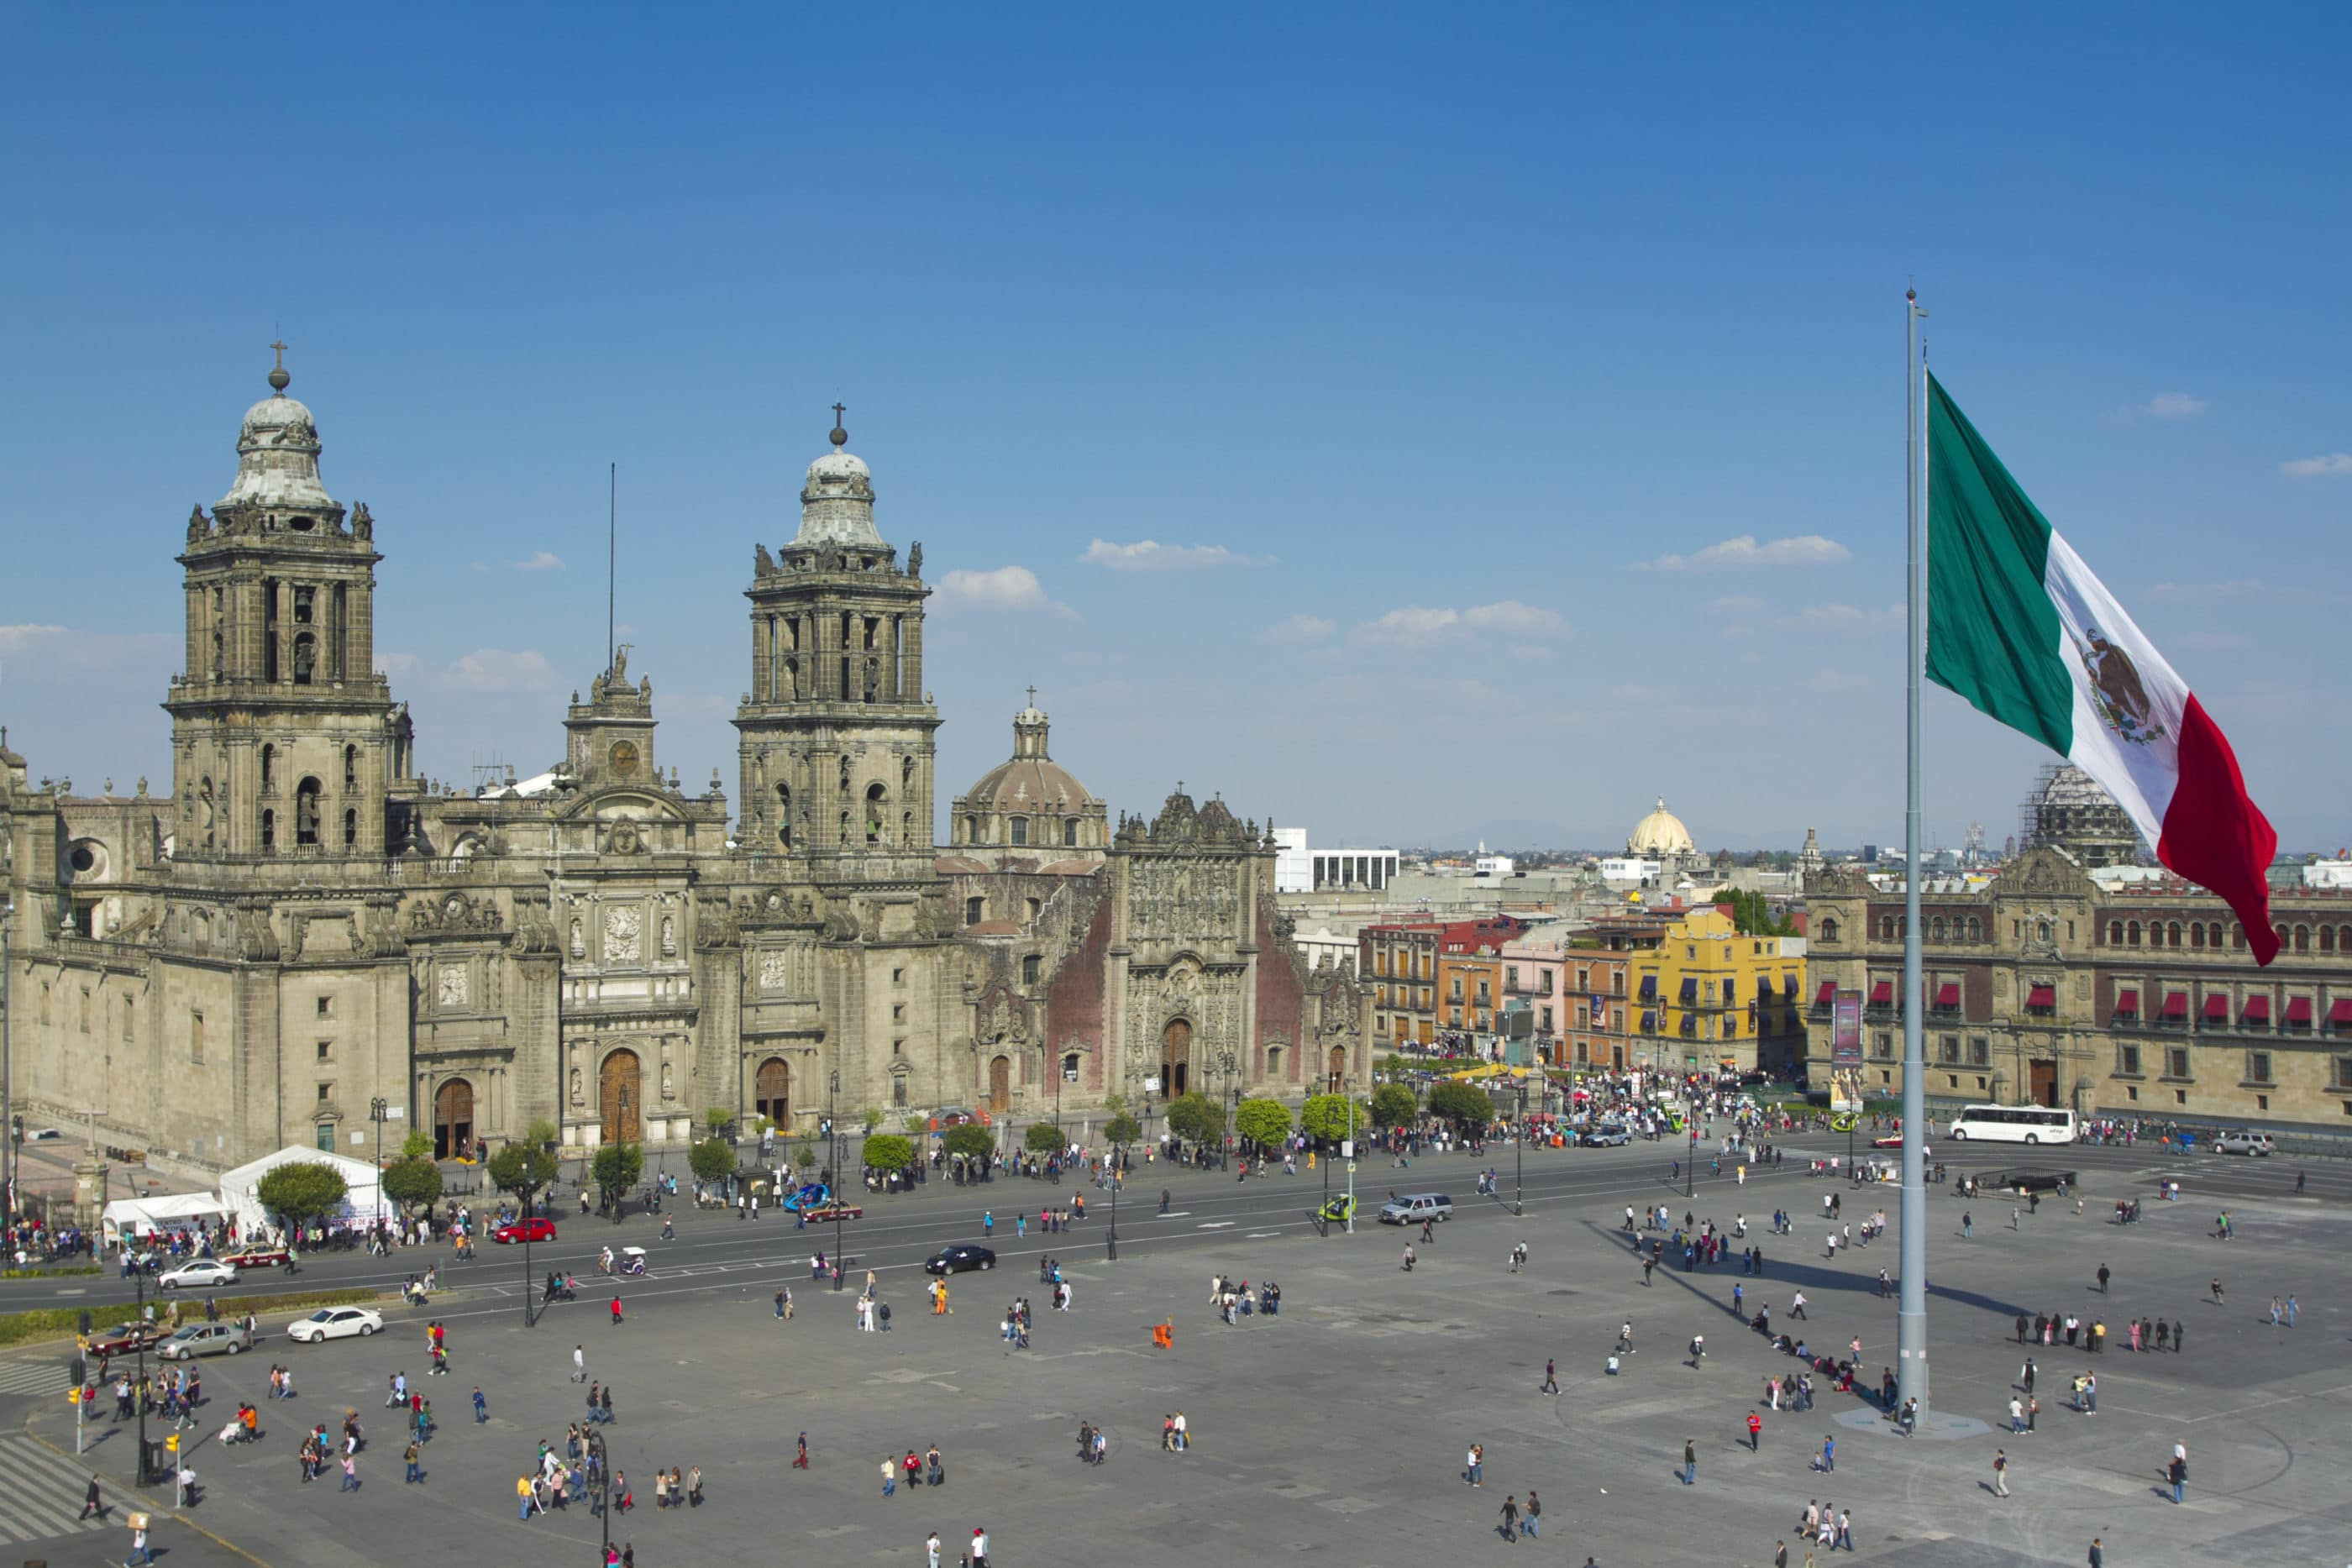 The Zocalo in Mexico City, with the cathedral and giant flag in the center.